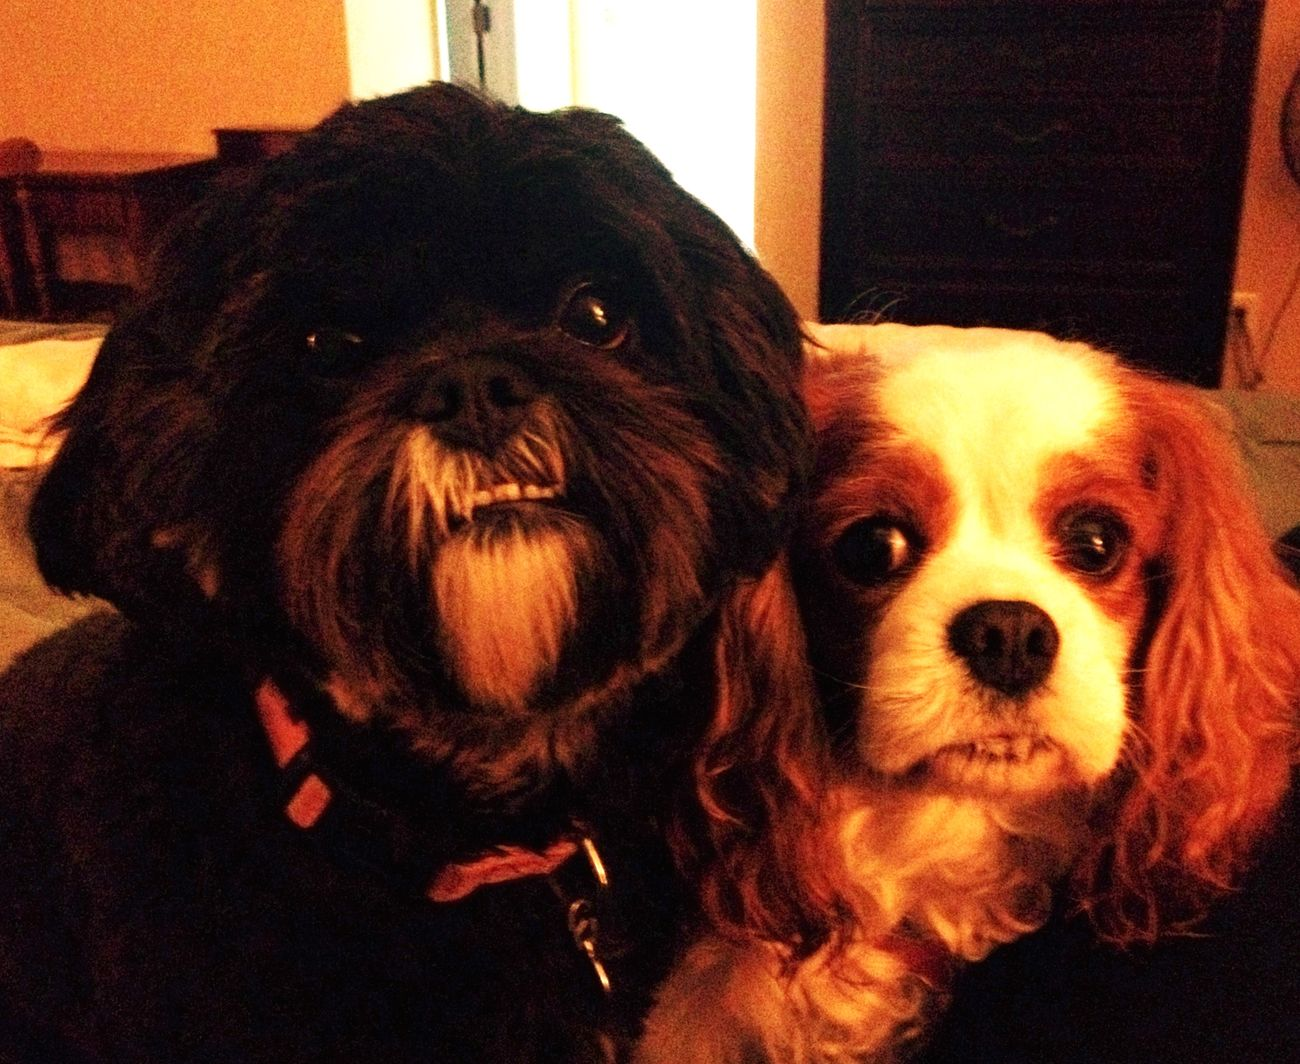 My two dogs + 1 ham & cheese sandwich...so much of forlorn puppy-eyes yearning, Sarah McClachlin could be singing in the background. Dogs Cavachon Cavalier King Charles Spaniel A Dogs Life